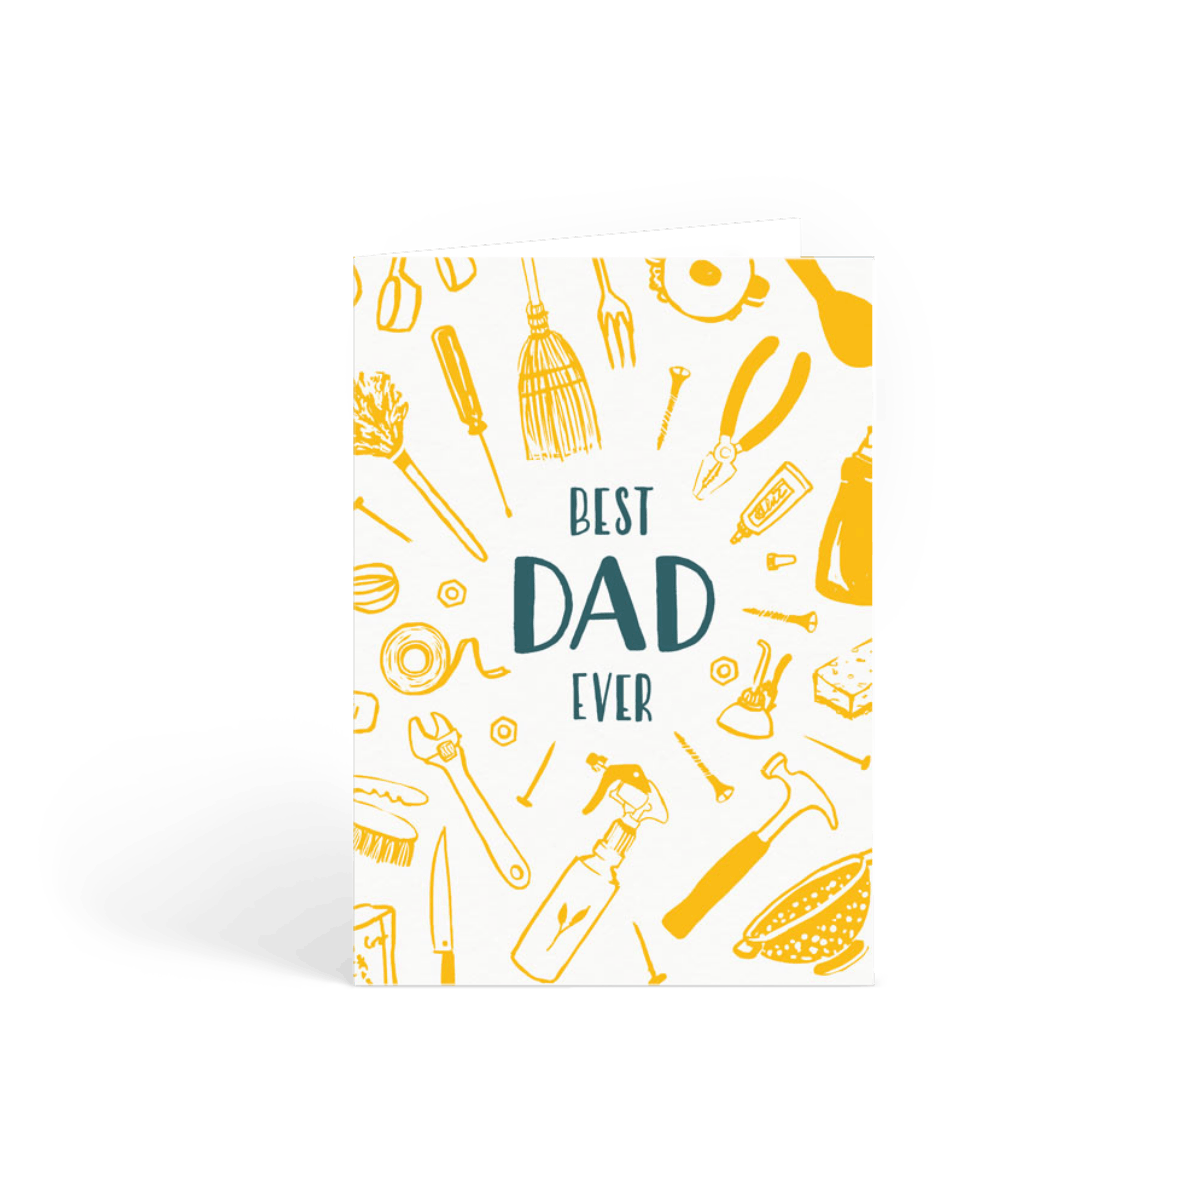 Https%3a%2f%2fwww.papier.com%2fproduct image%2f5066%2f2%2fbest dad ever 1318 front 1458148857.png?ixlib=rb 1.1